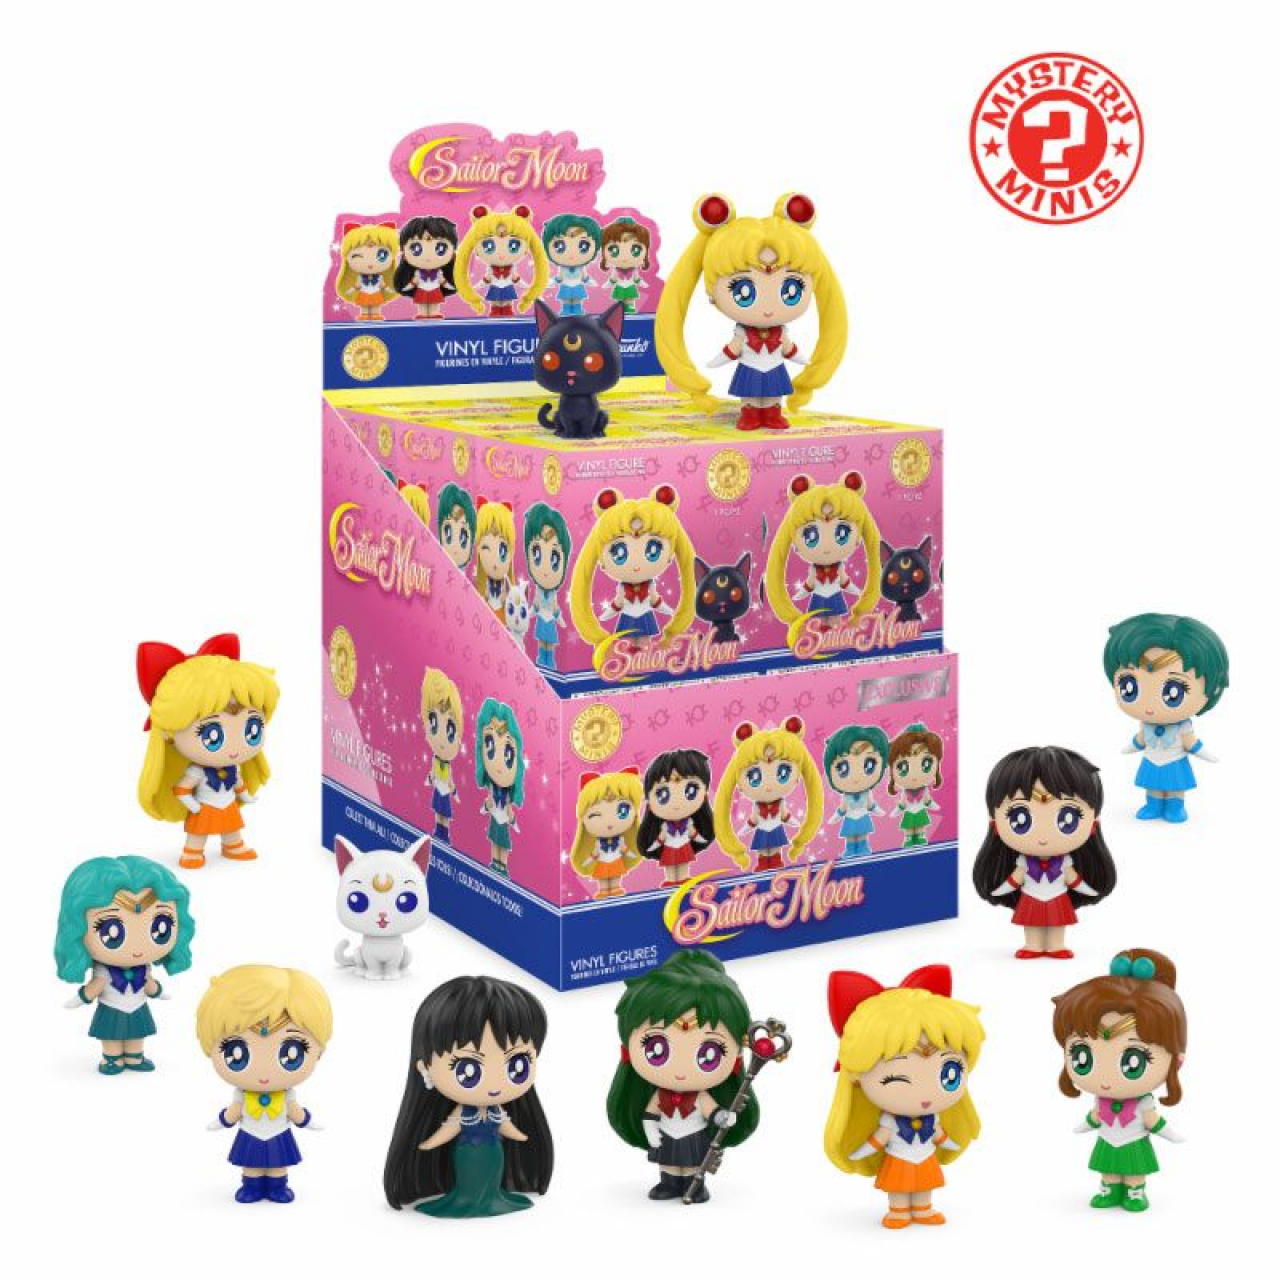 Sailor Moon Mystery Minis Vinyl Mini Figures 6 cm Display Exclusive (12)